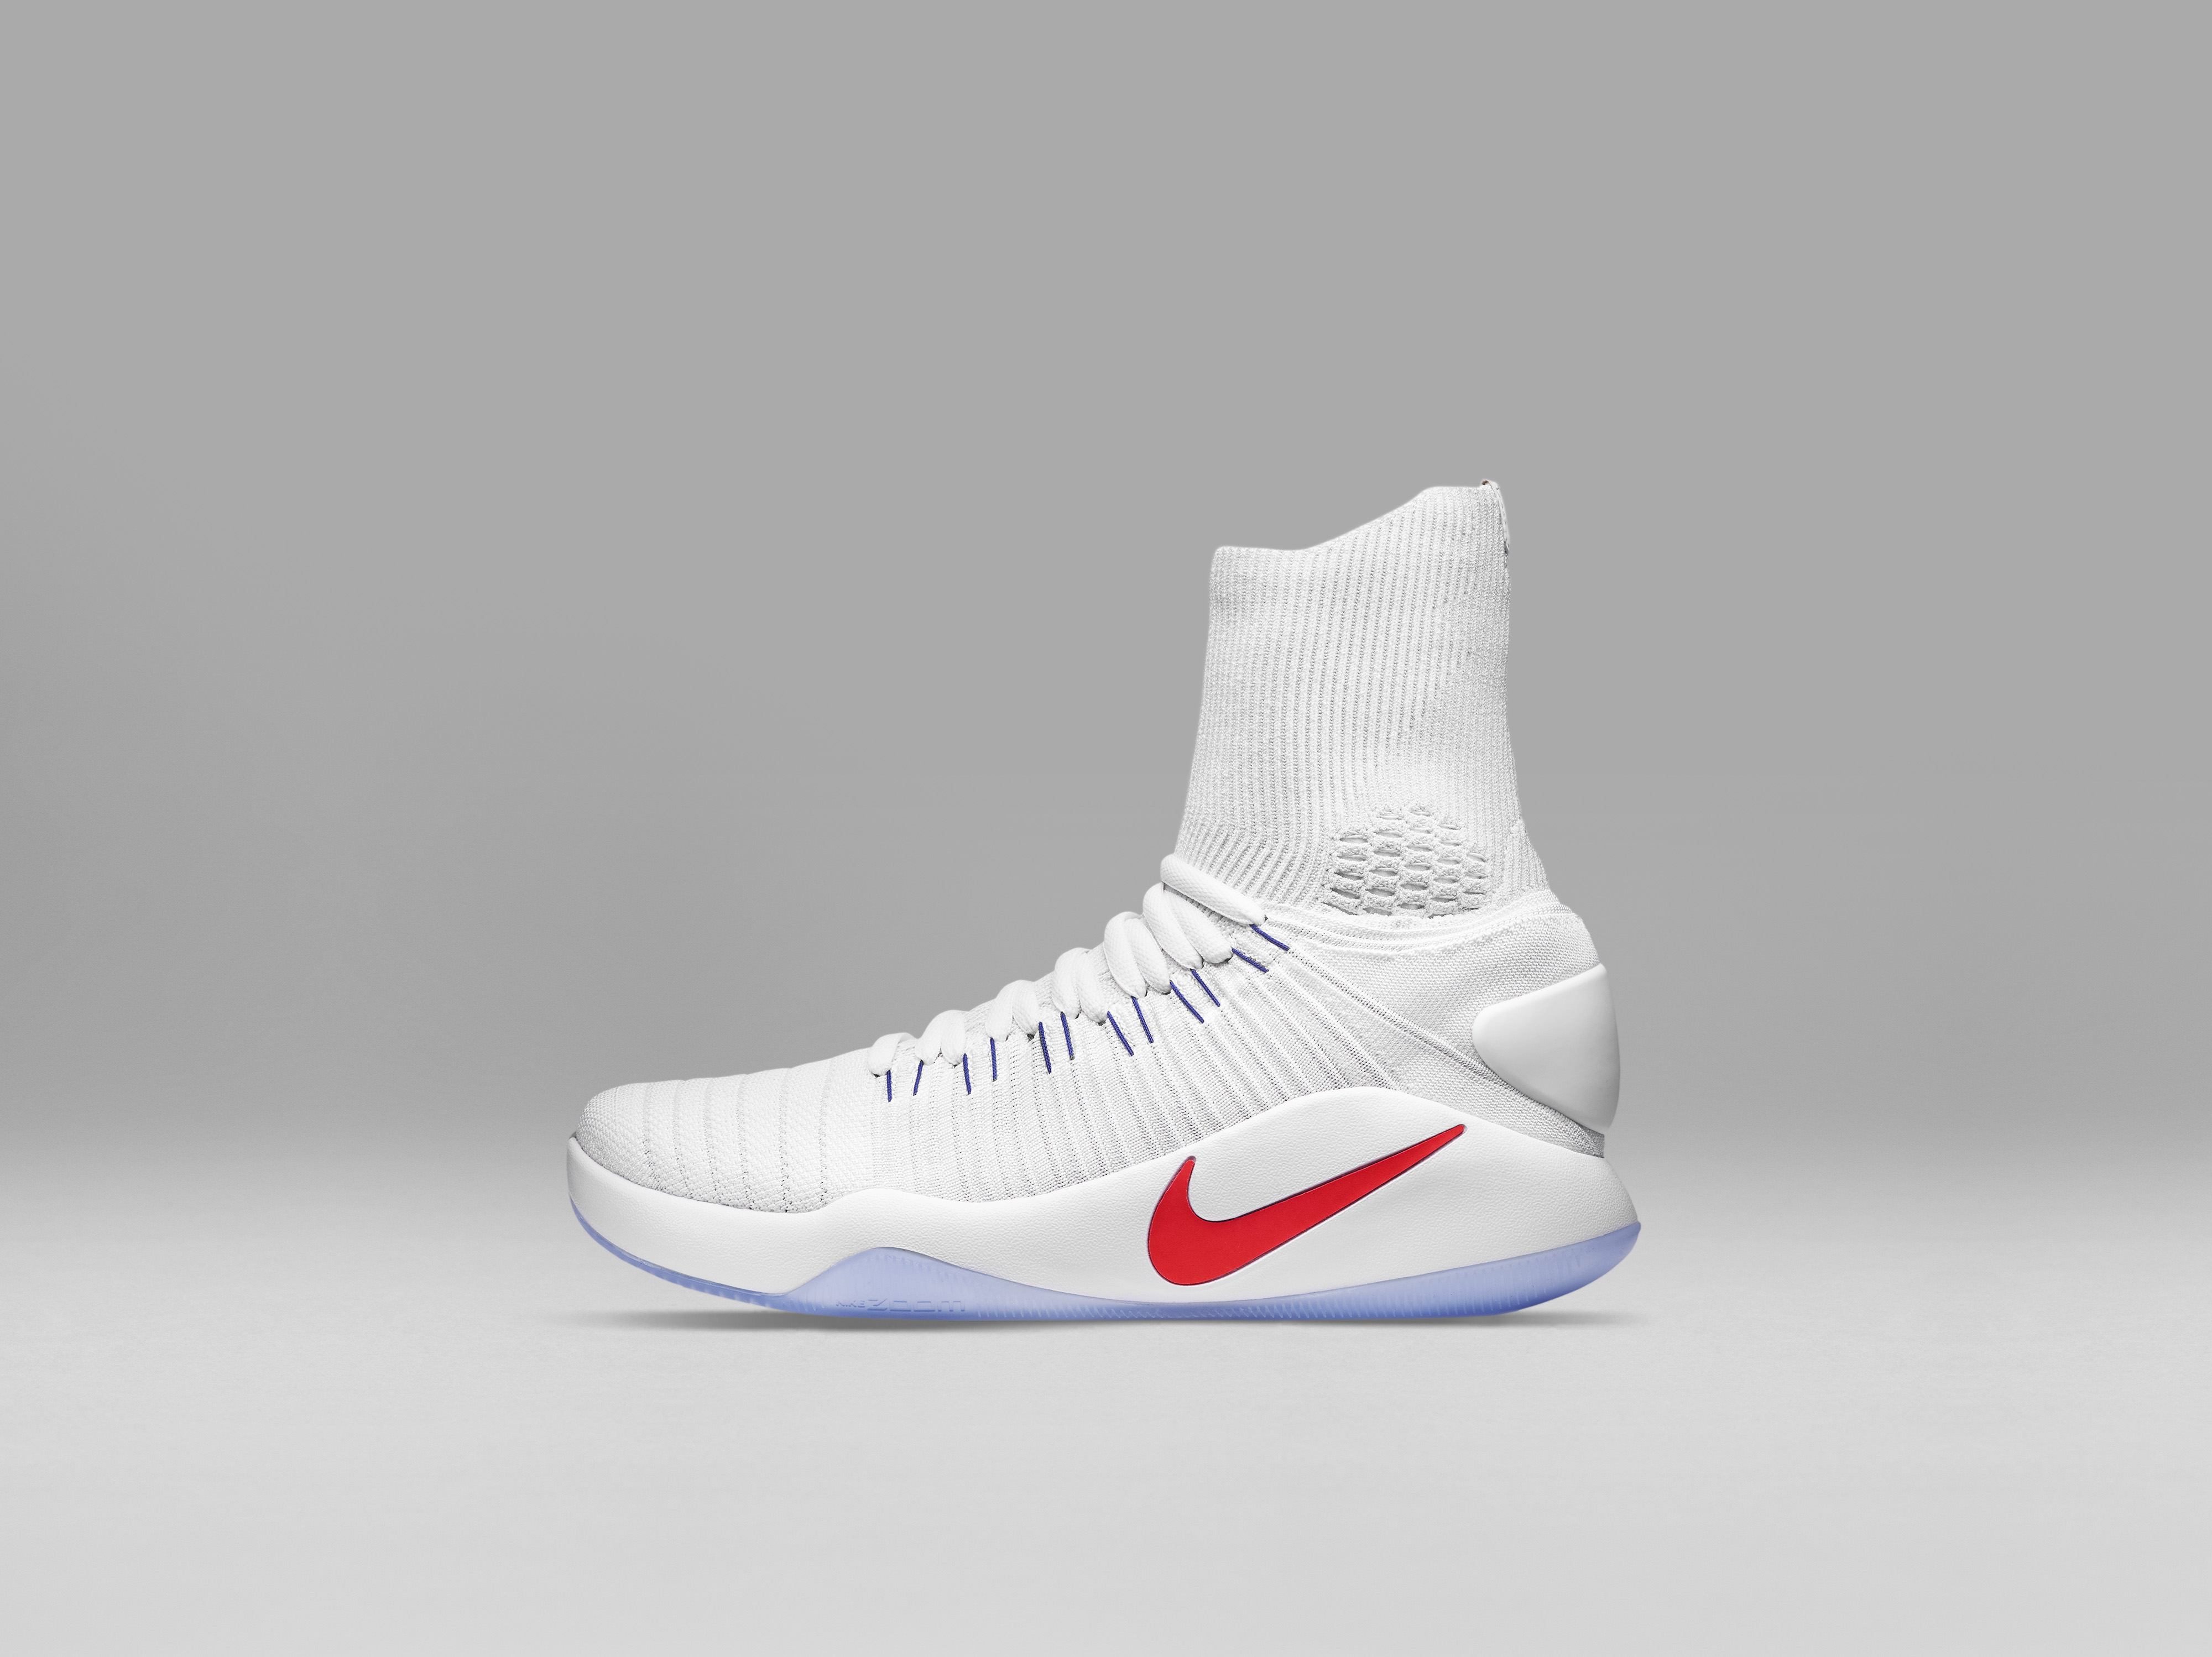 9f1dcf81e2f6 Buy nike hyperdunk high  Free shipping for worldwide!OFF78% The ...